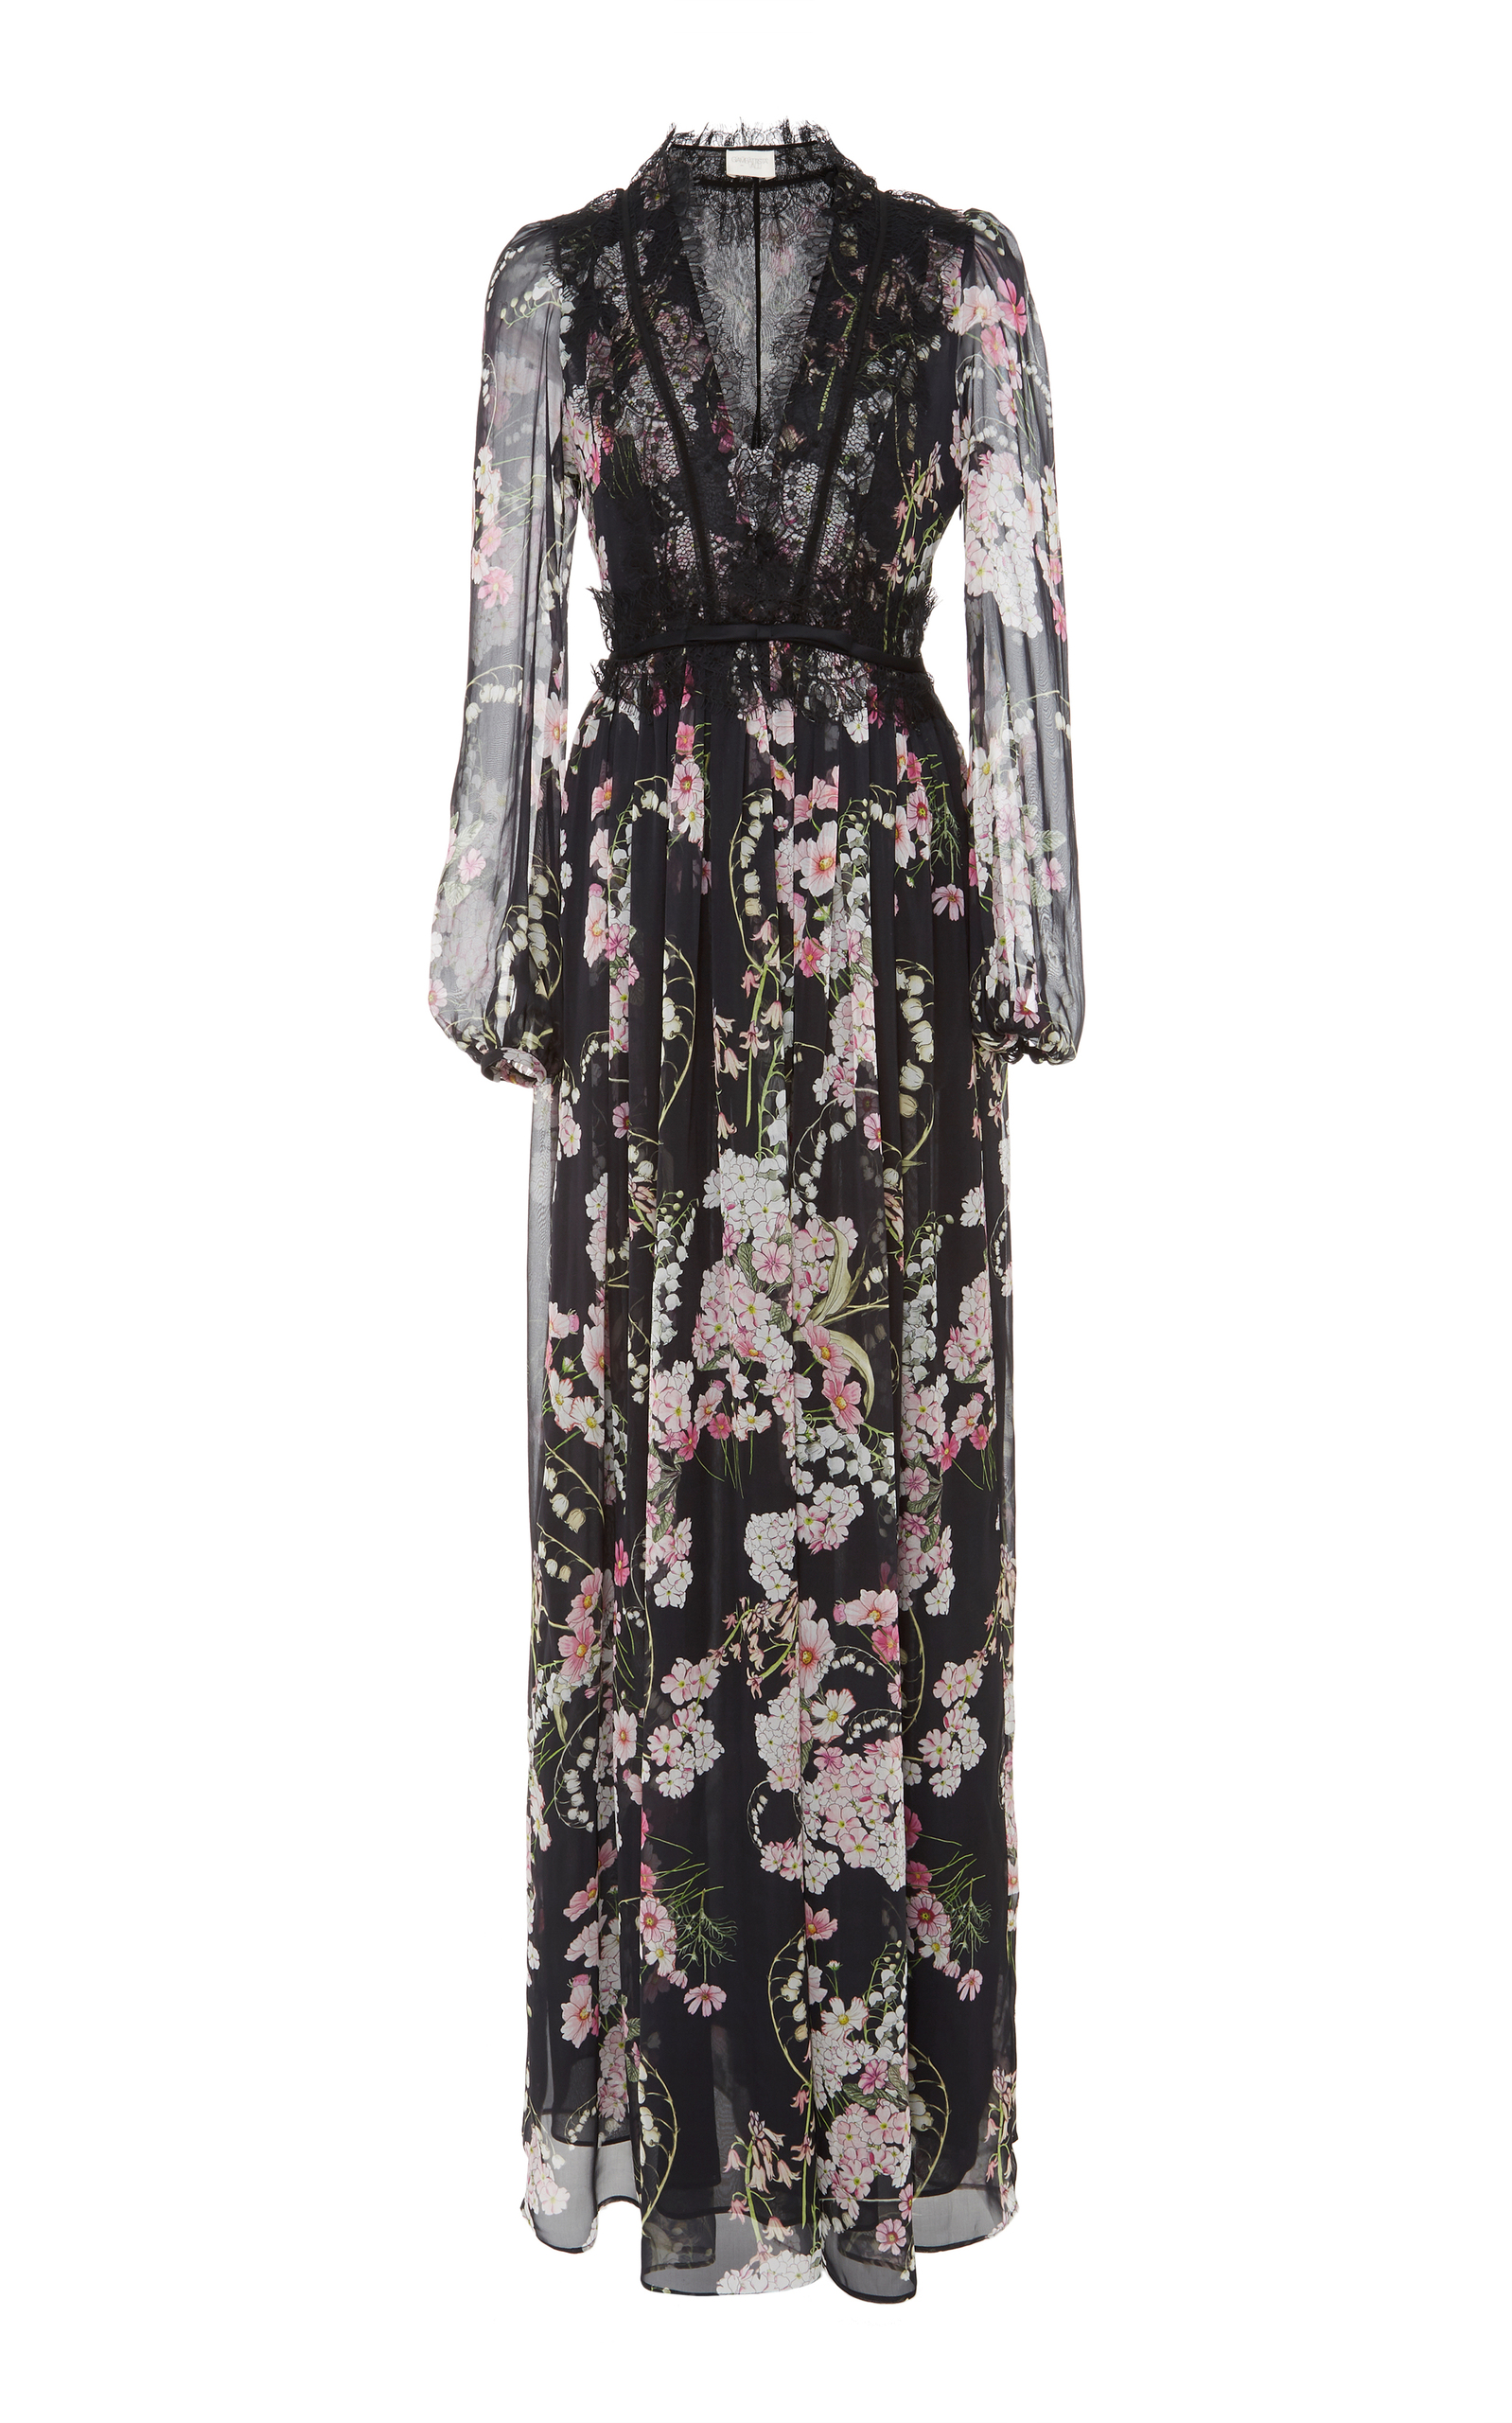 Lace-trimmed Floral-print Silk-chiffon Maxi Dress - Black Giambattista Valli Clearance Best Place Pictures Sale Online Discount Footlocker Finishline Discounts Cheap Amazon 37wjqBVH